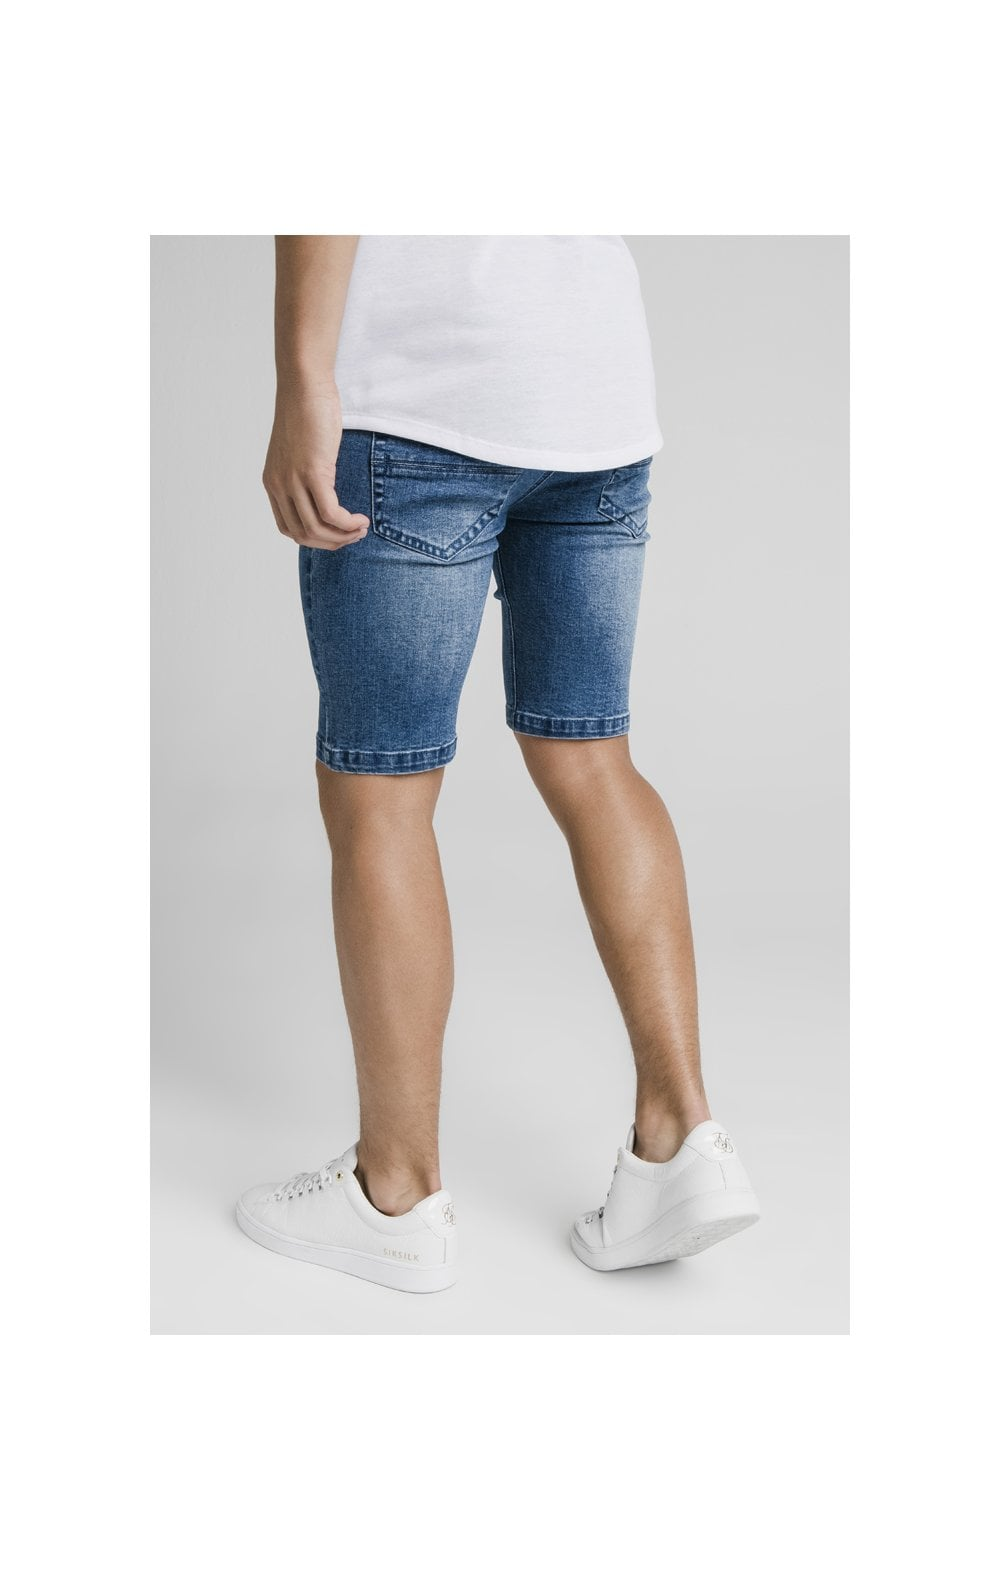 Illusive London Distressed Denim Shorts - Midstone (2)